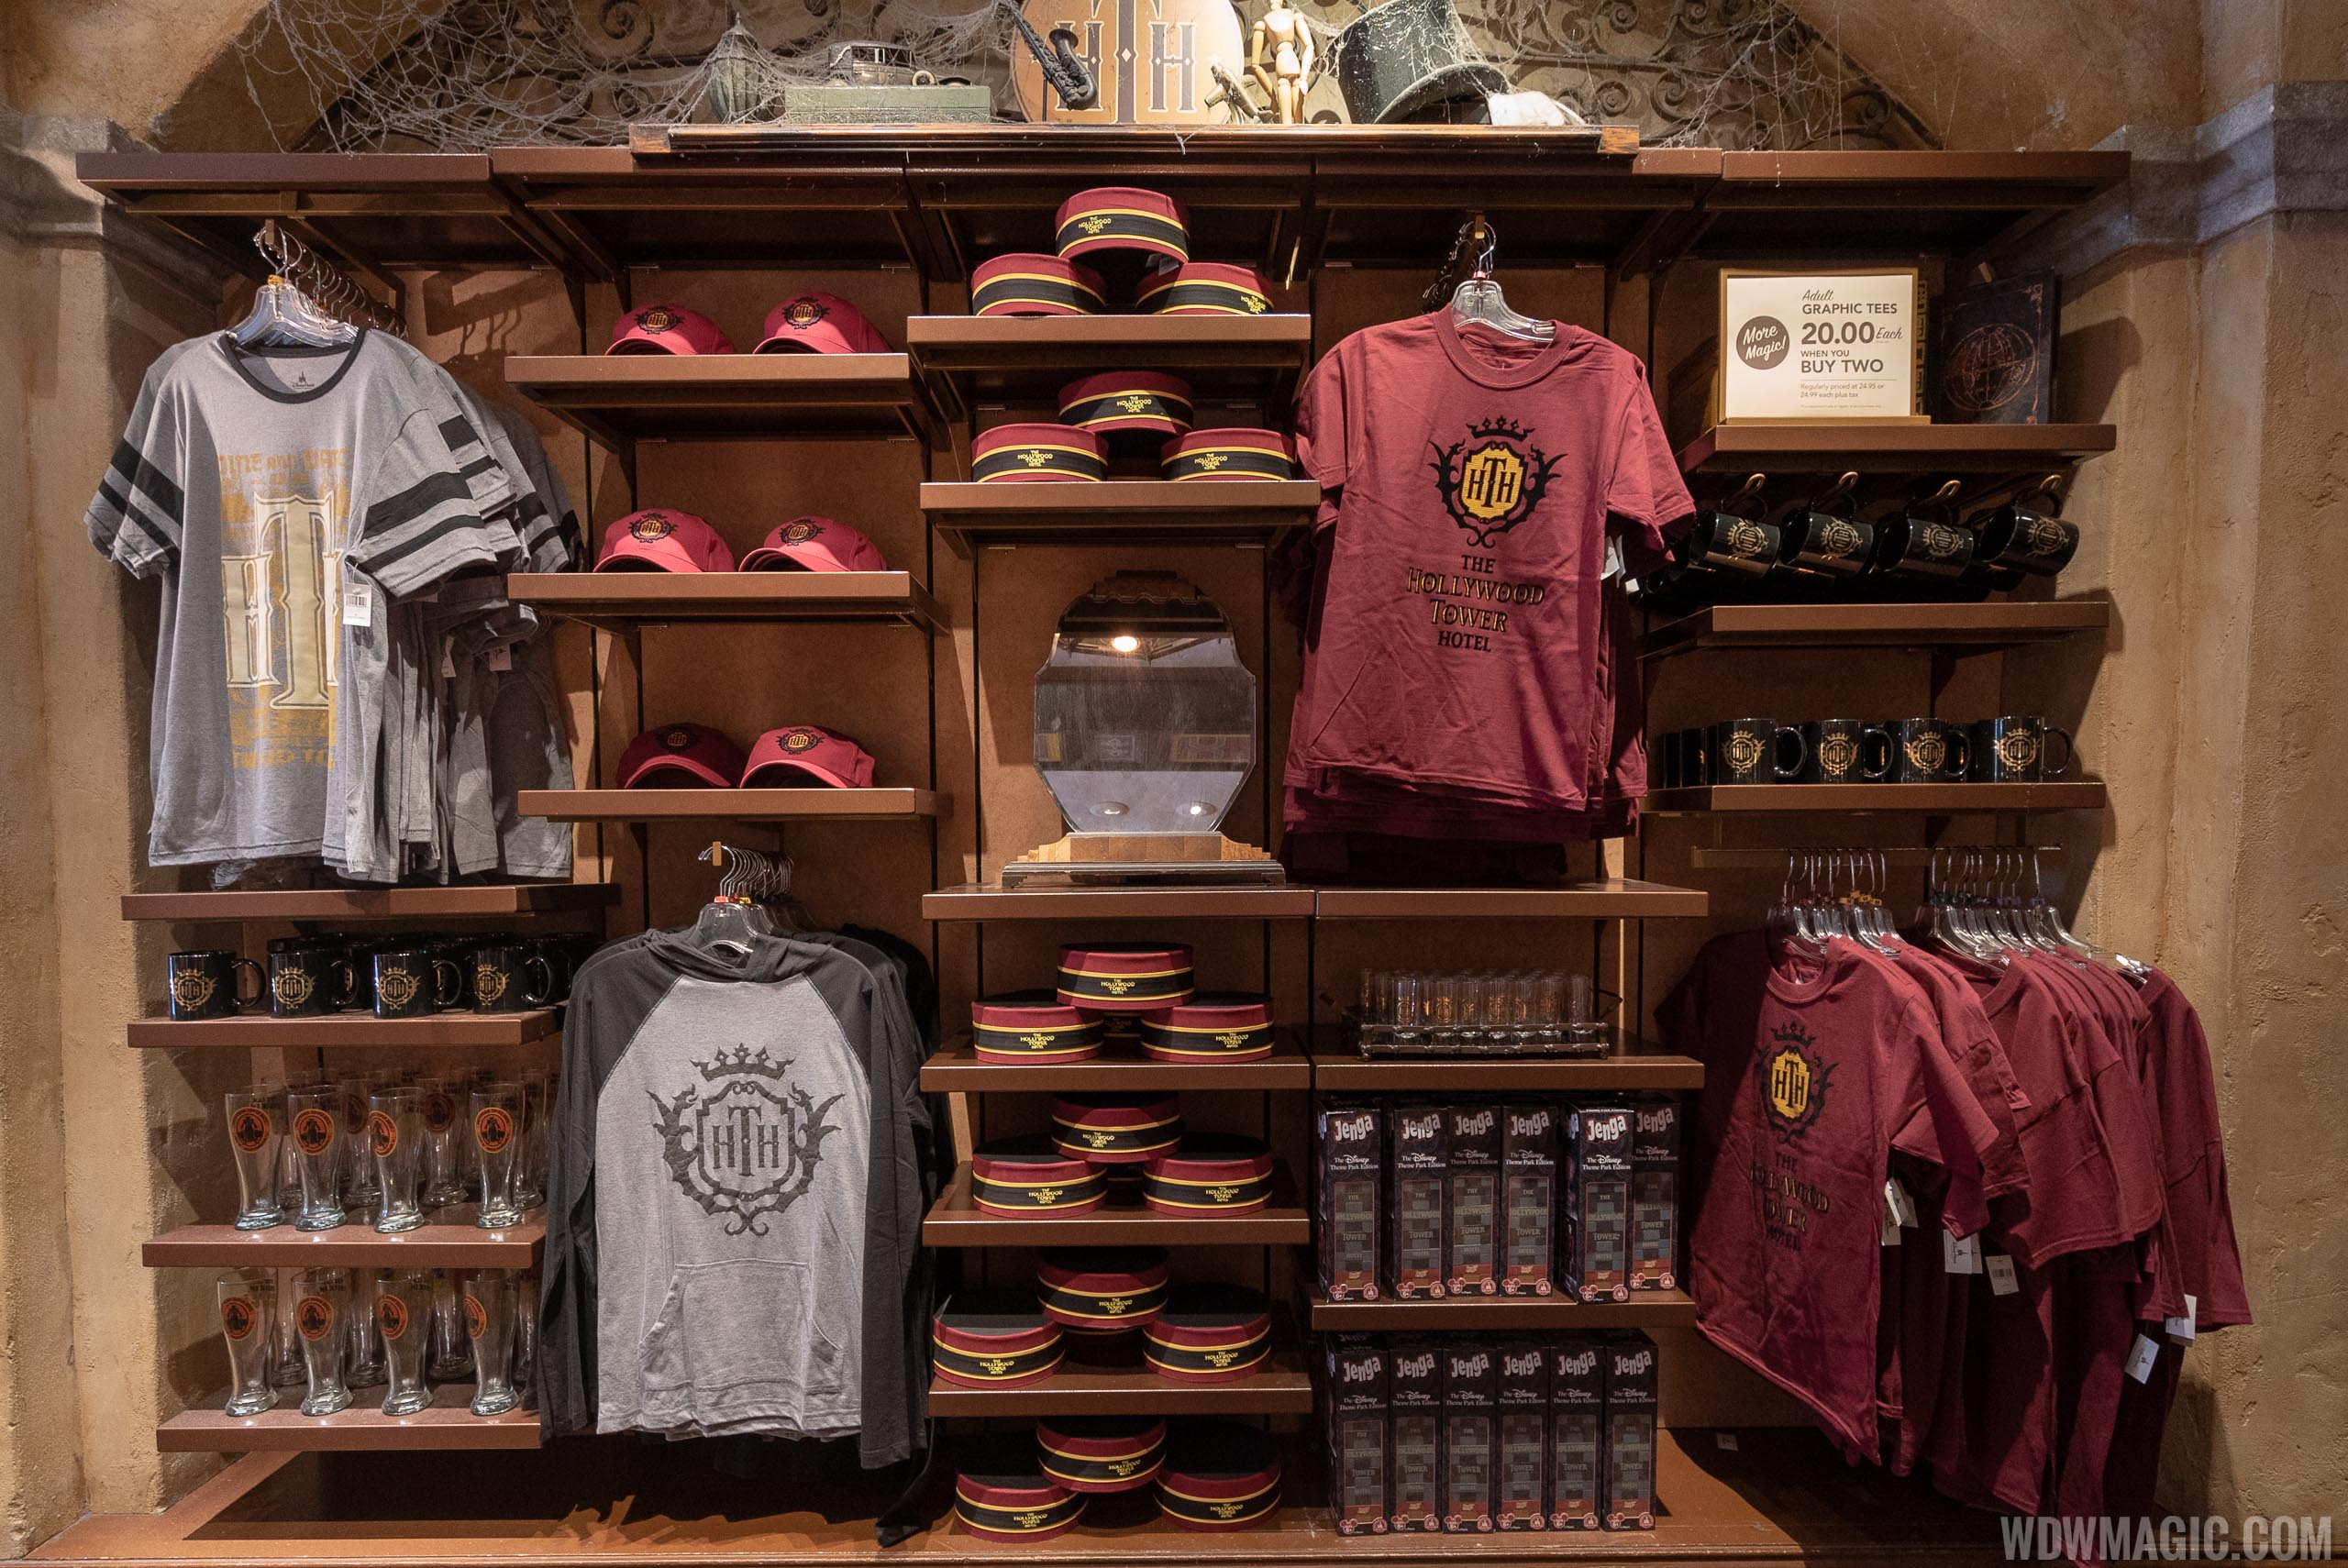 Tower of Tower merchandise - October 2018